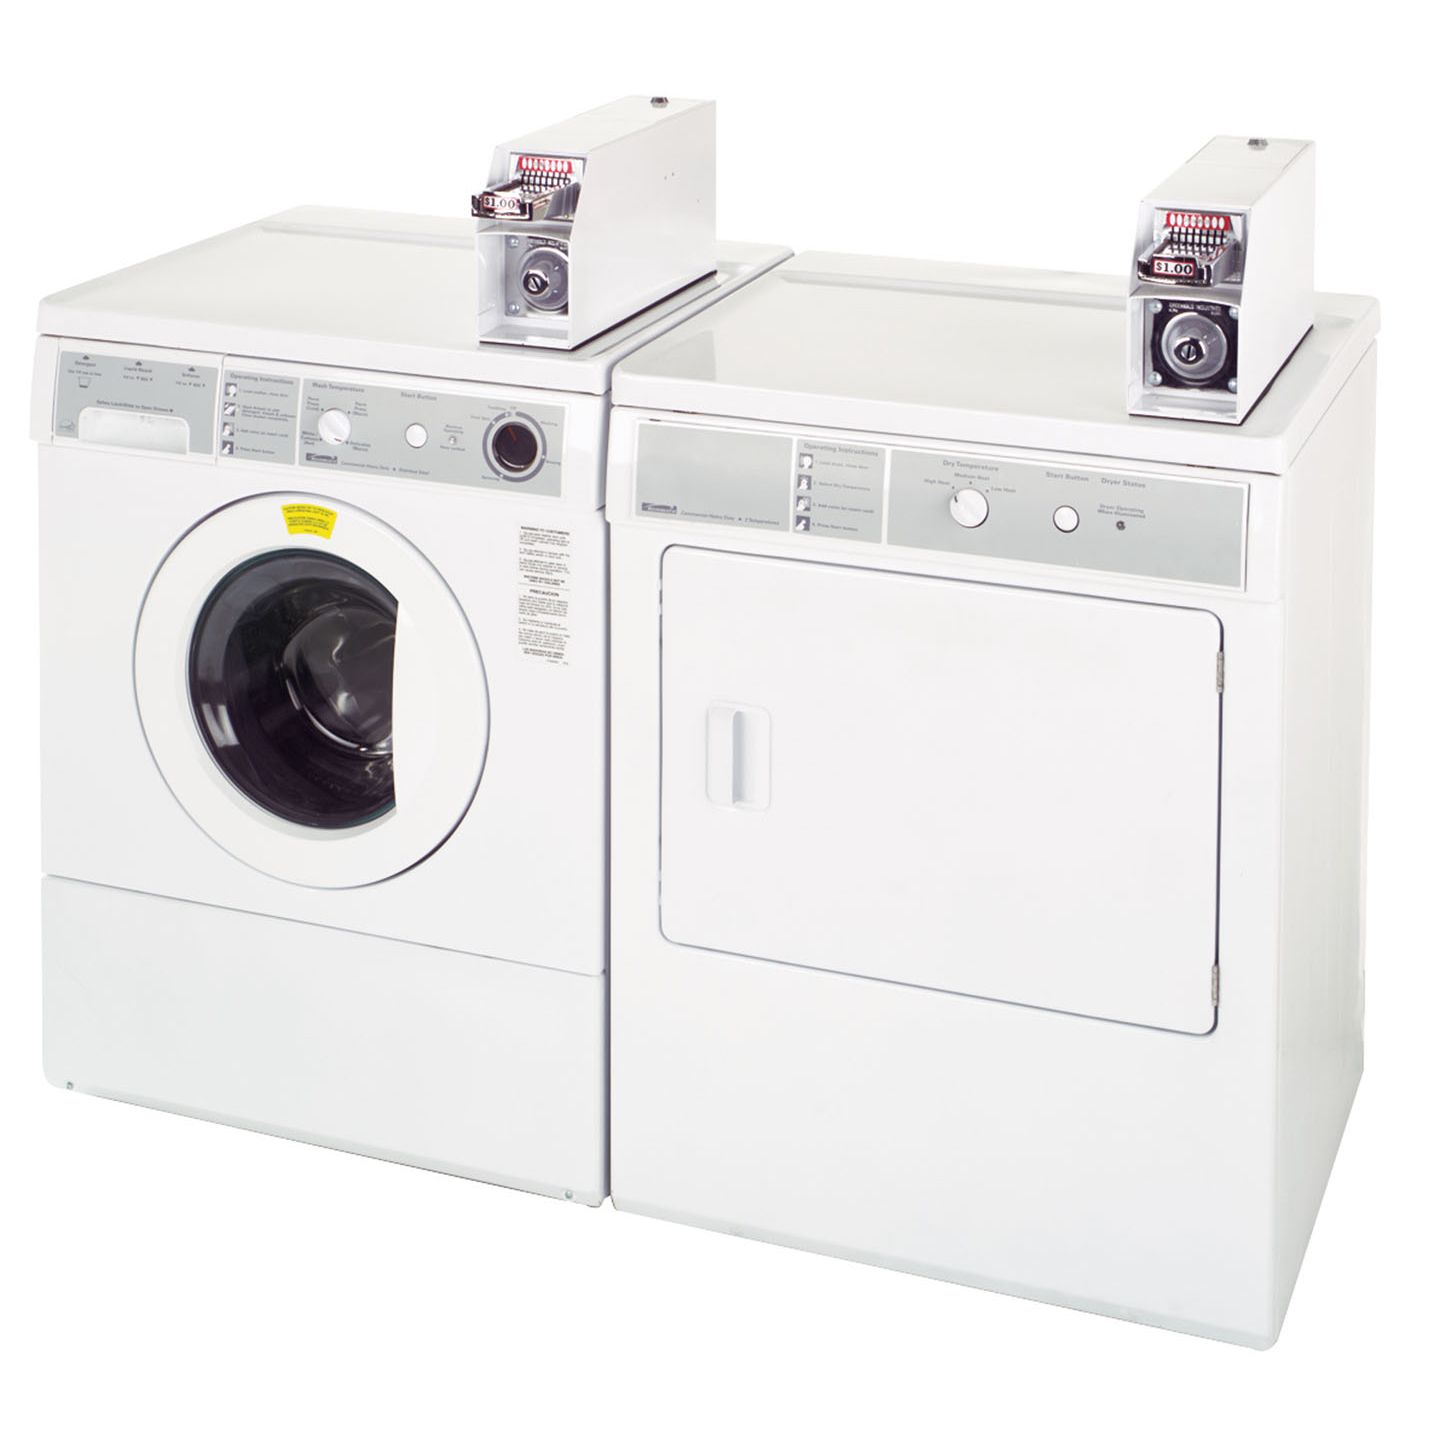 Kenmore 2.7 cu. ft. High Efficiency Coin-Operated Front Load Electric Washer (2718)